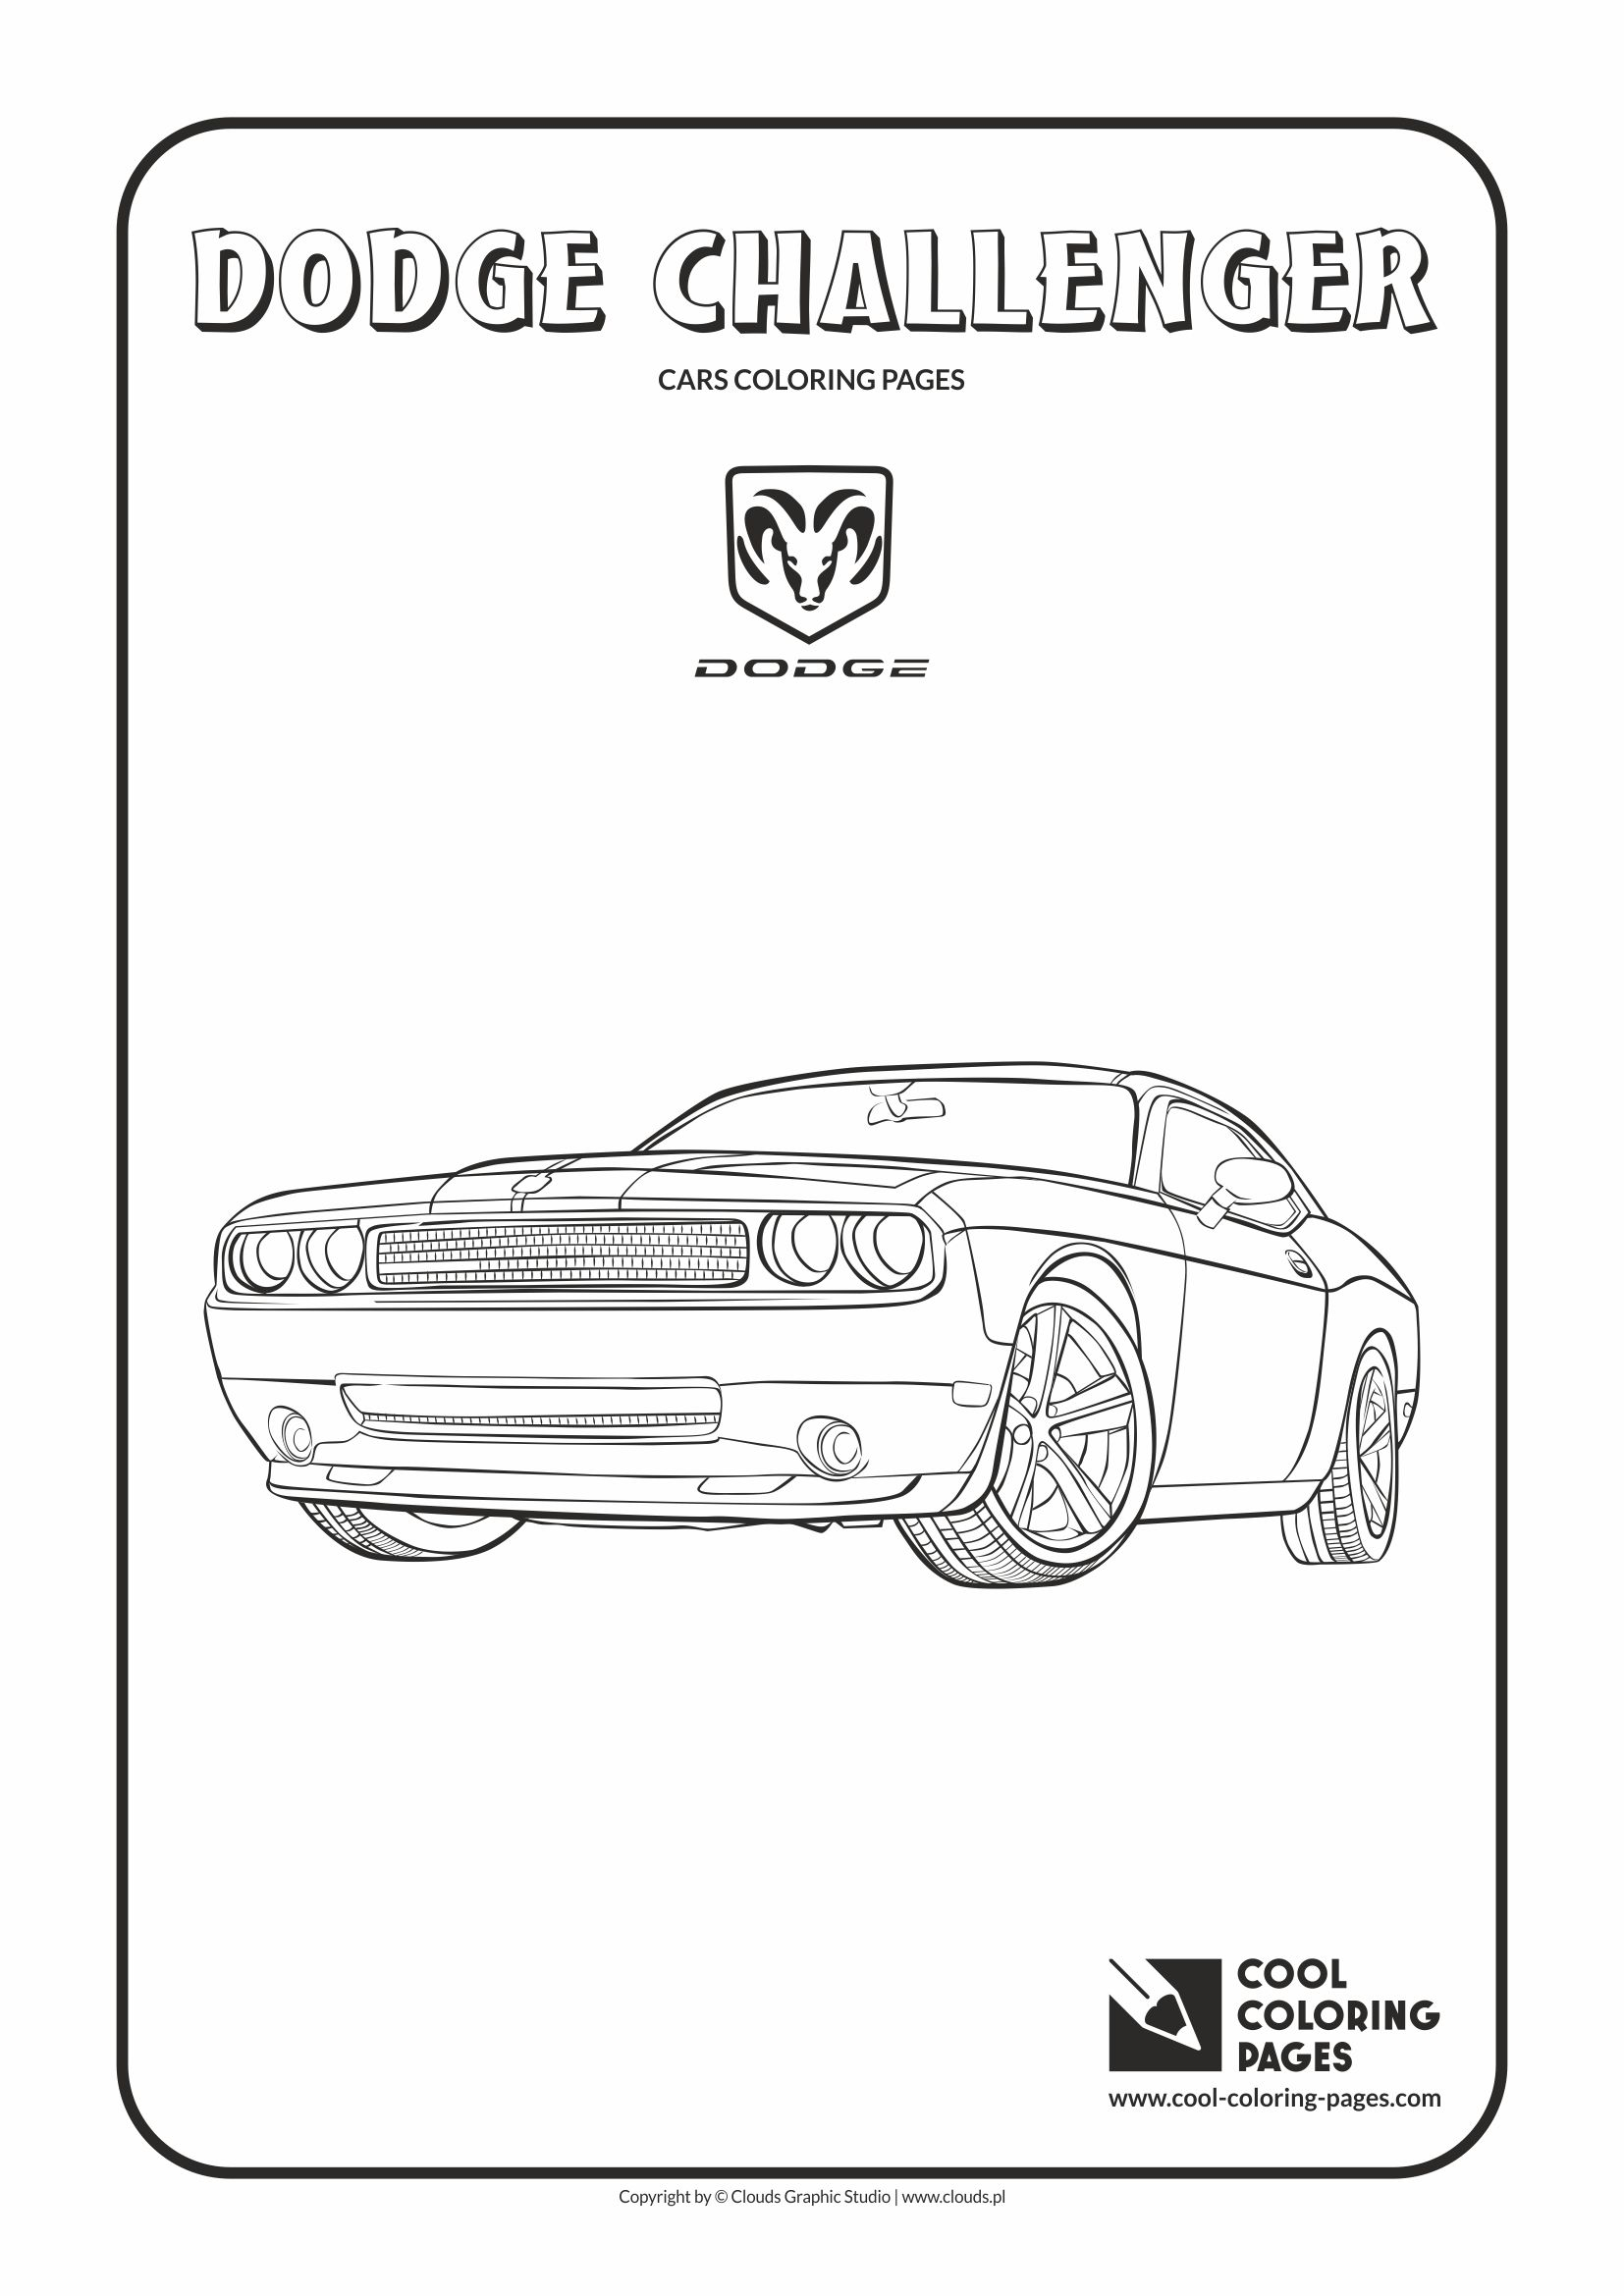 Cool Coloring Pages - Vehicles / Dodge Challenger / Coloring page with Dodge Challenger